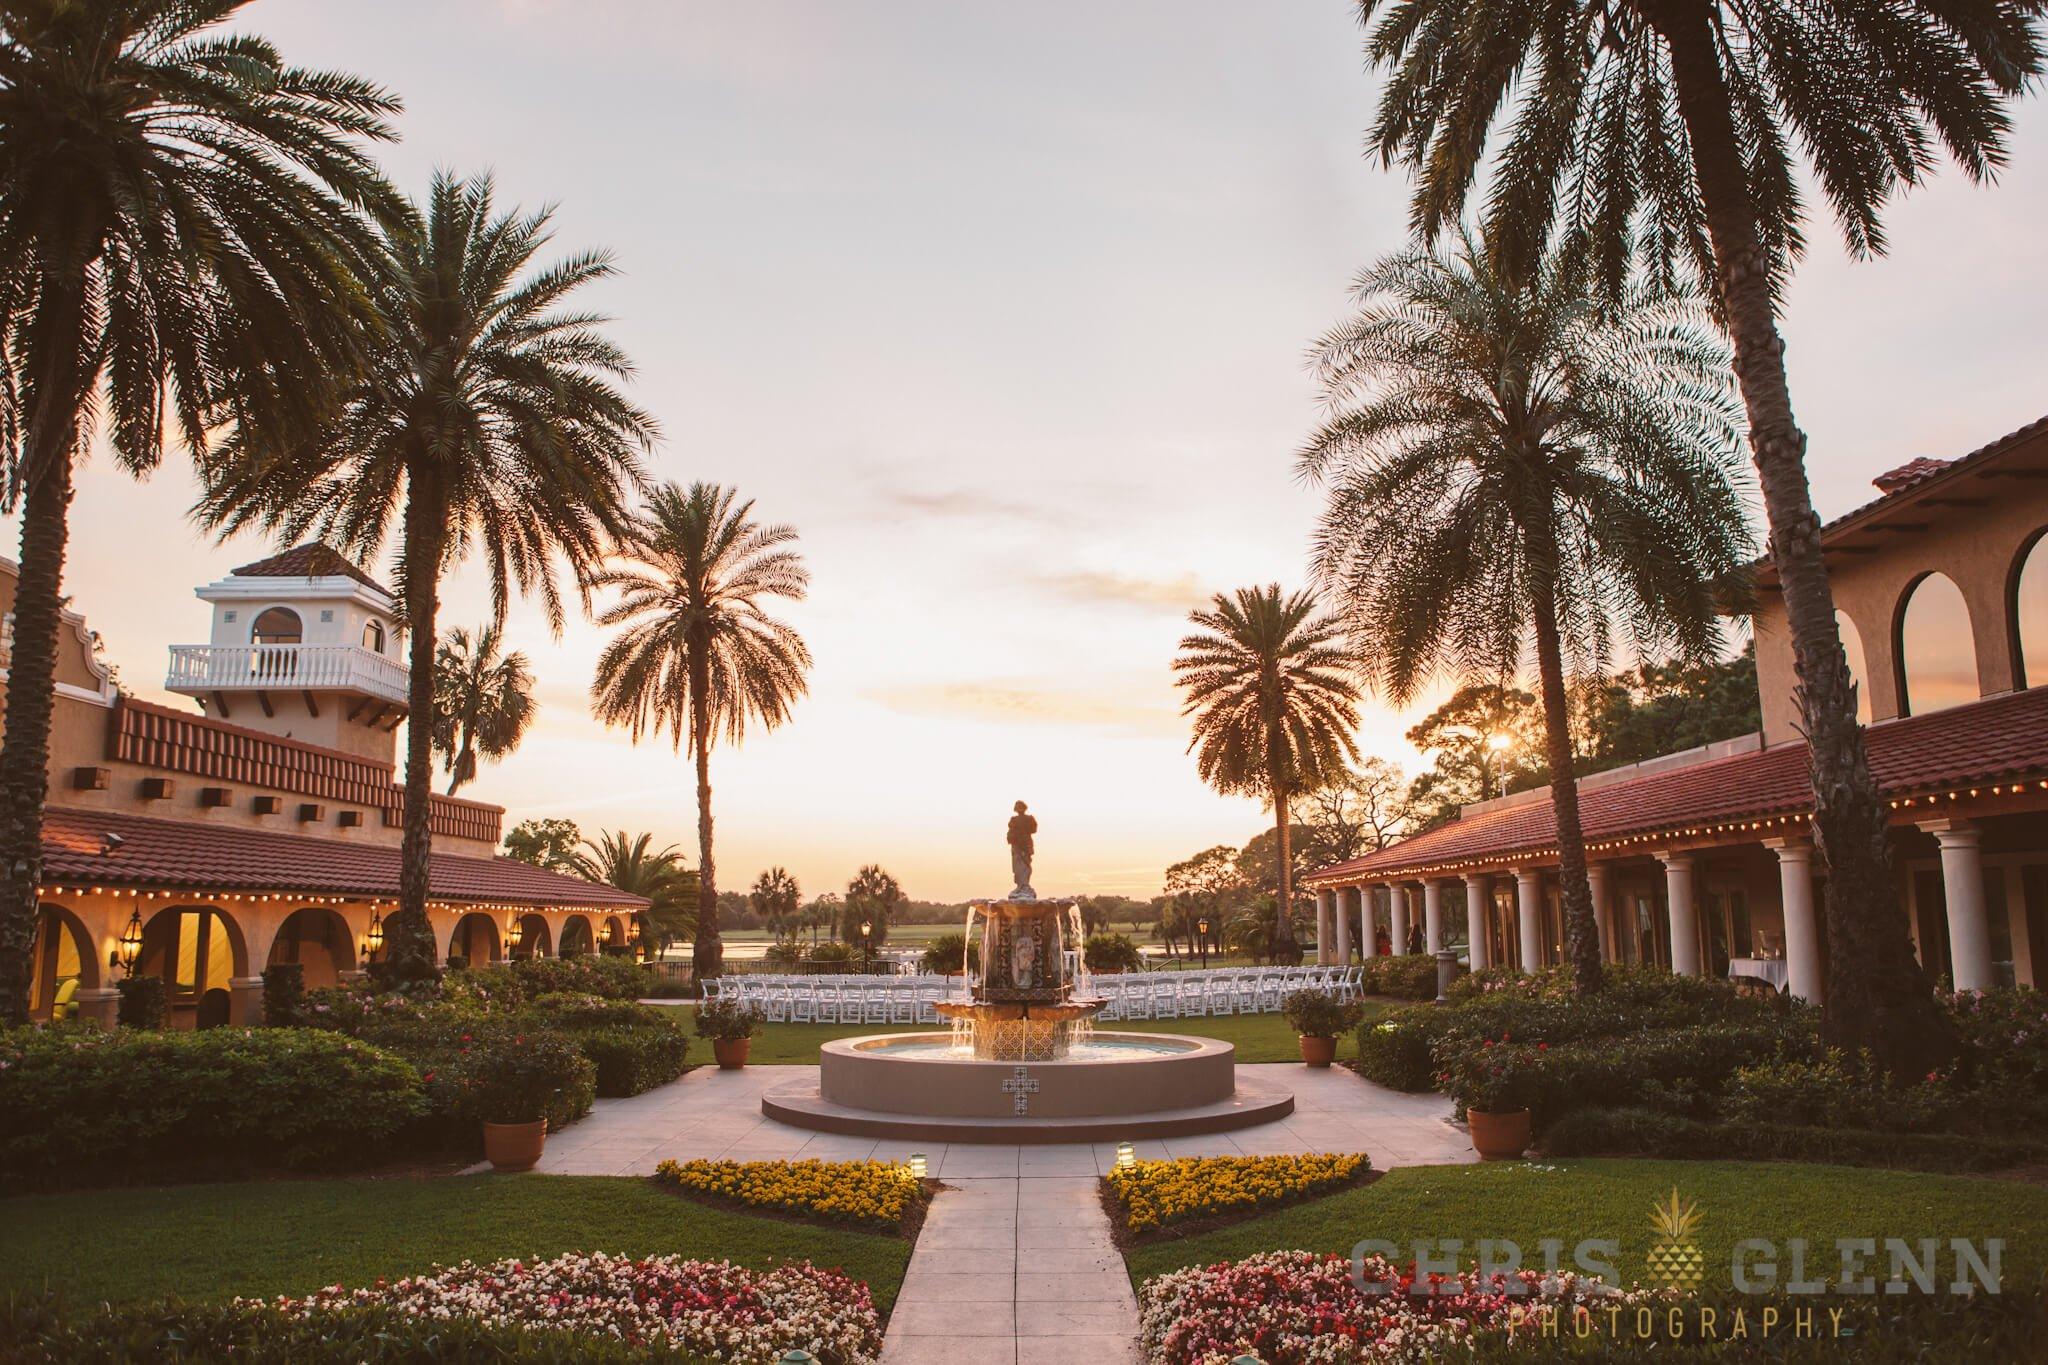 Central Florida sunset behind Plaza de la Fontana garden ceremony space by Chris Glenn Photography